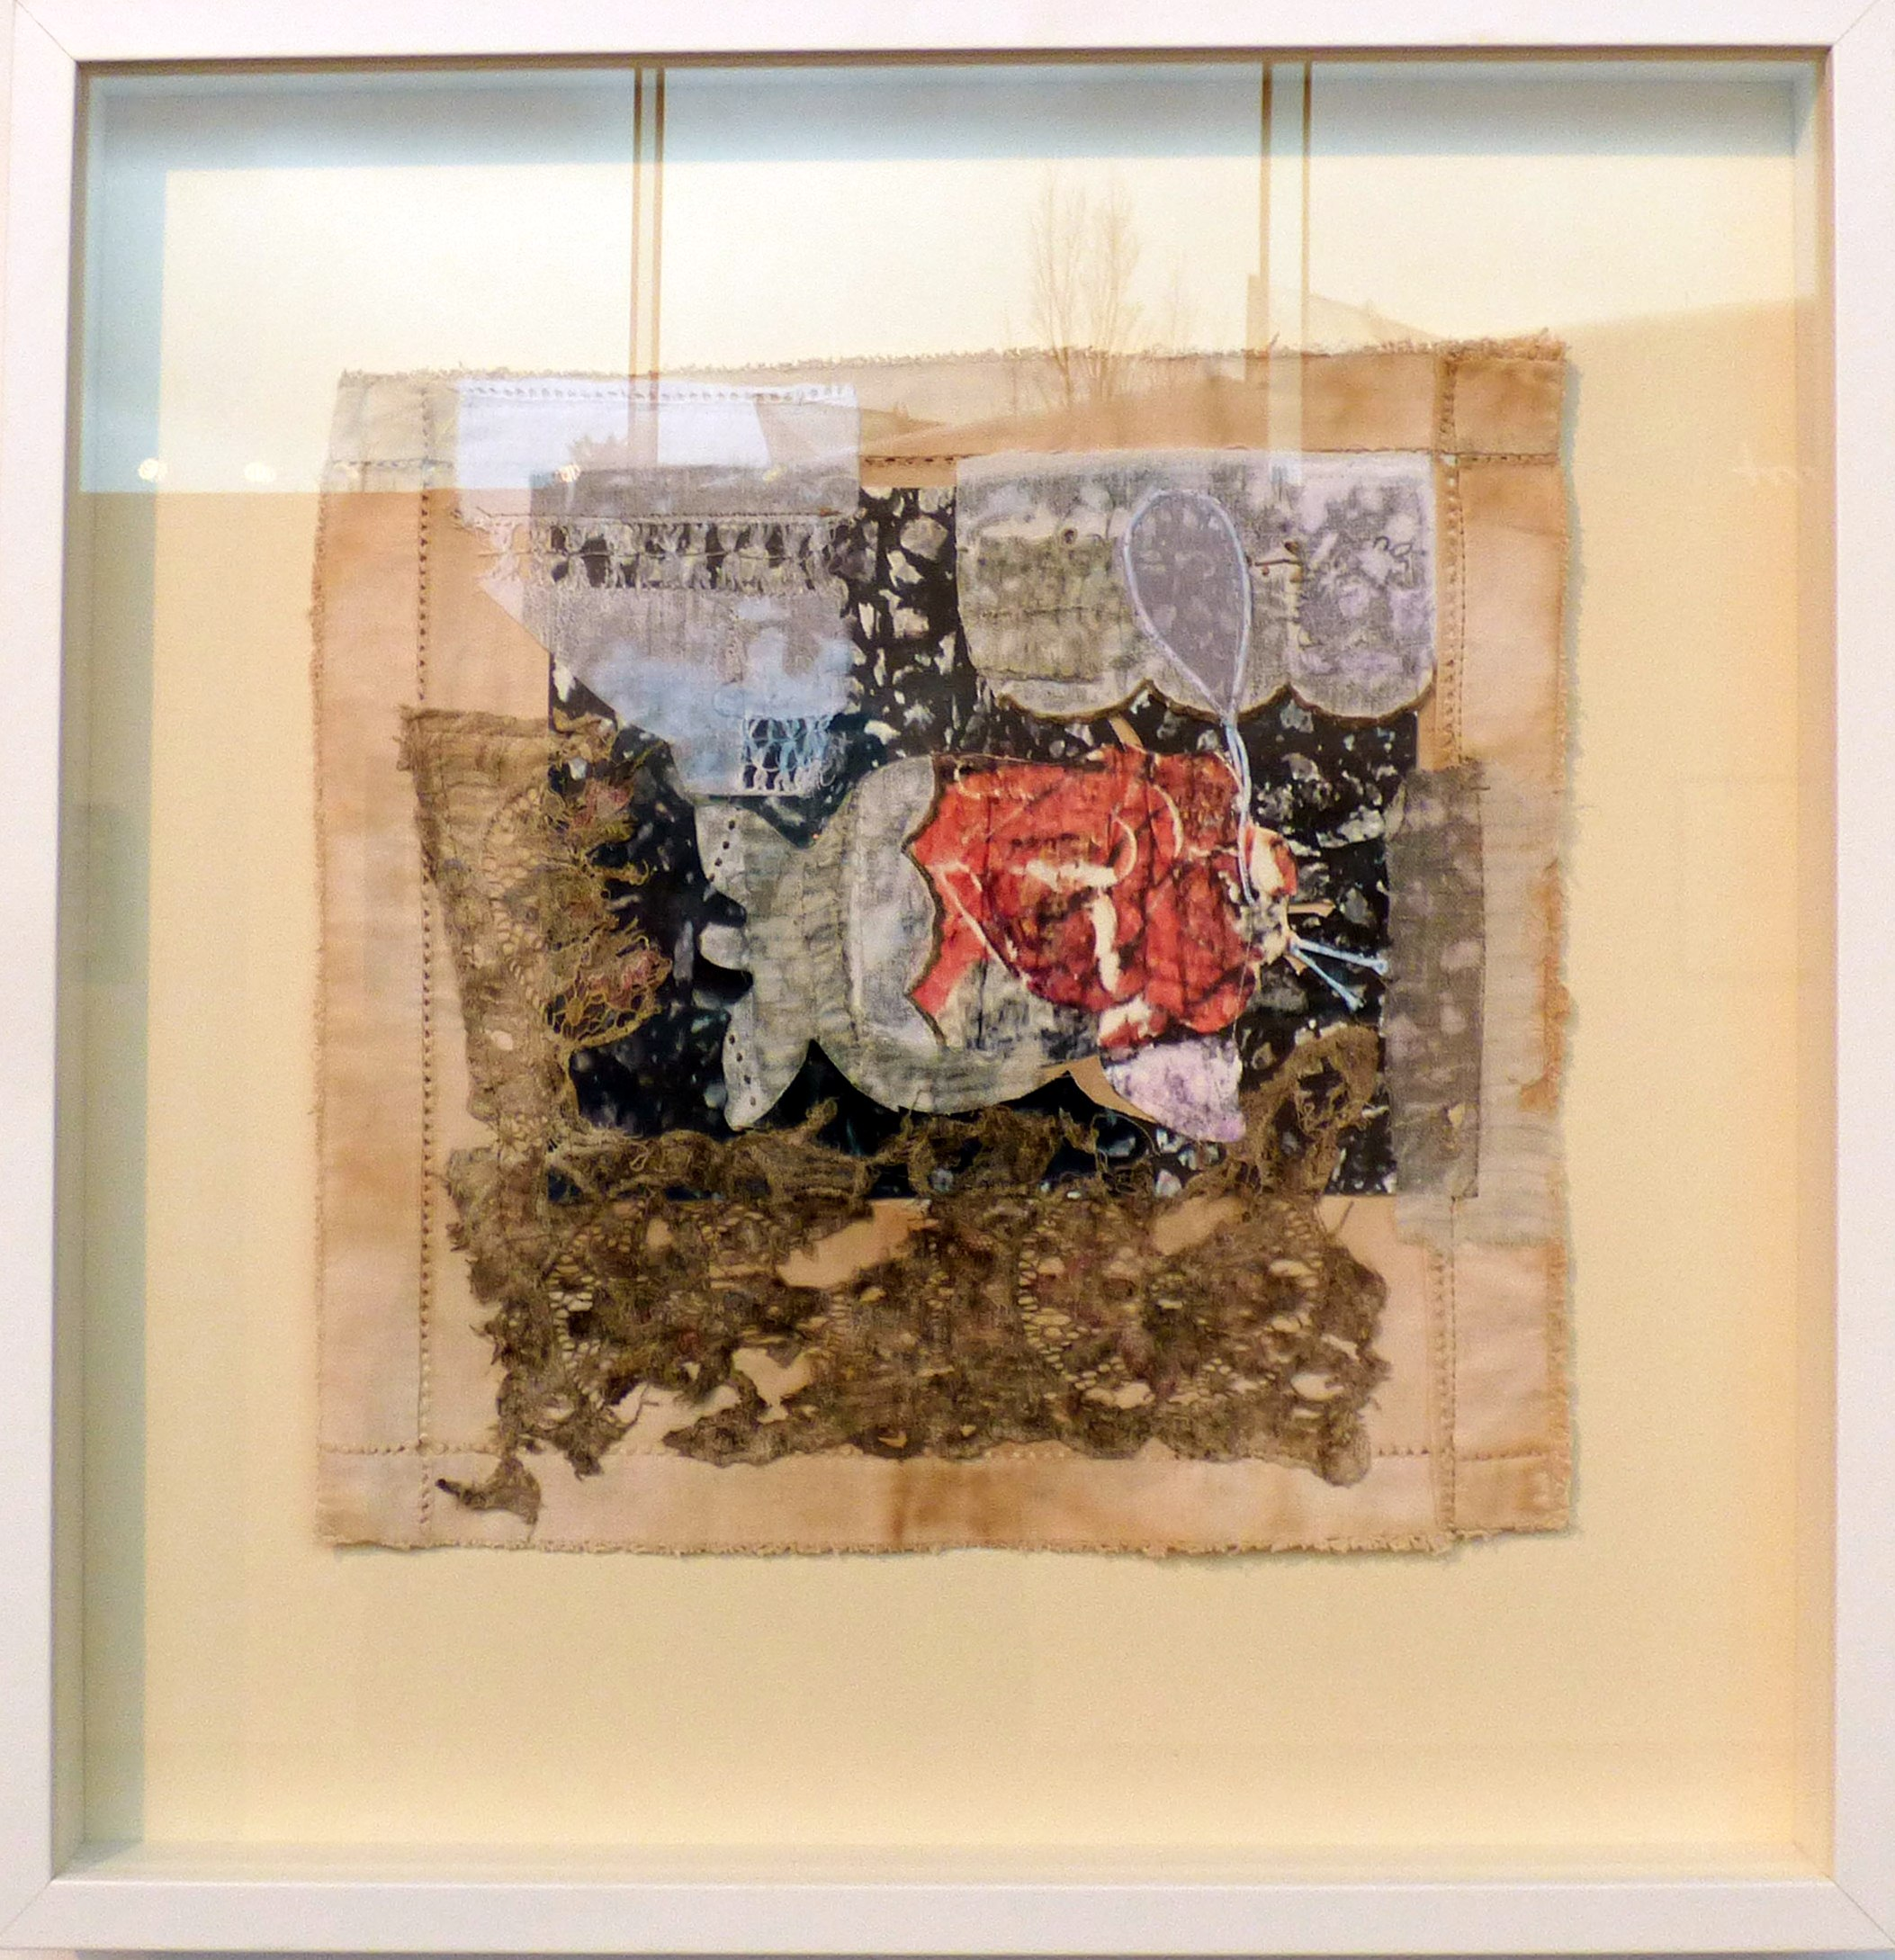 A ROSE BY ANY OTHER NAME WOULD SMELL AS SWEET by Sarah Feinmann, mixed media. From The Heart exhibition, St Helens, Feb 2020